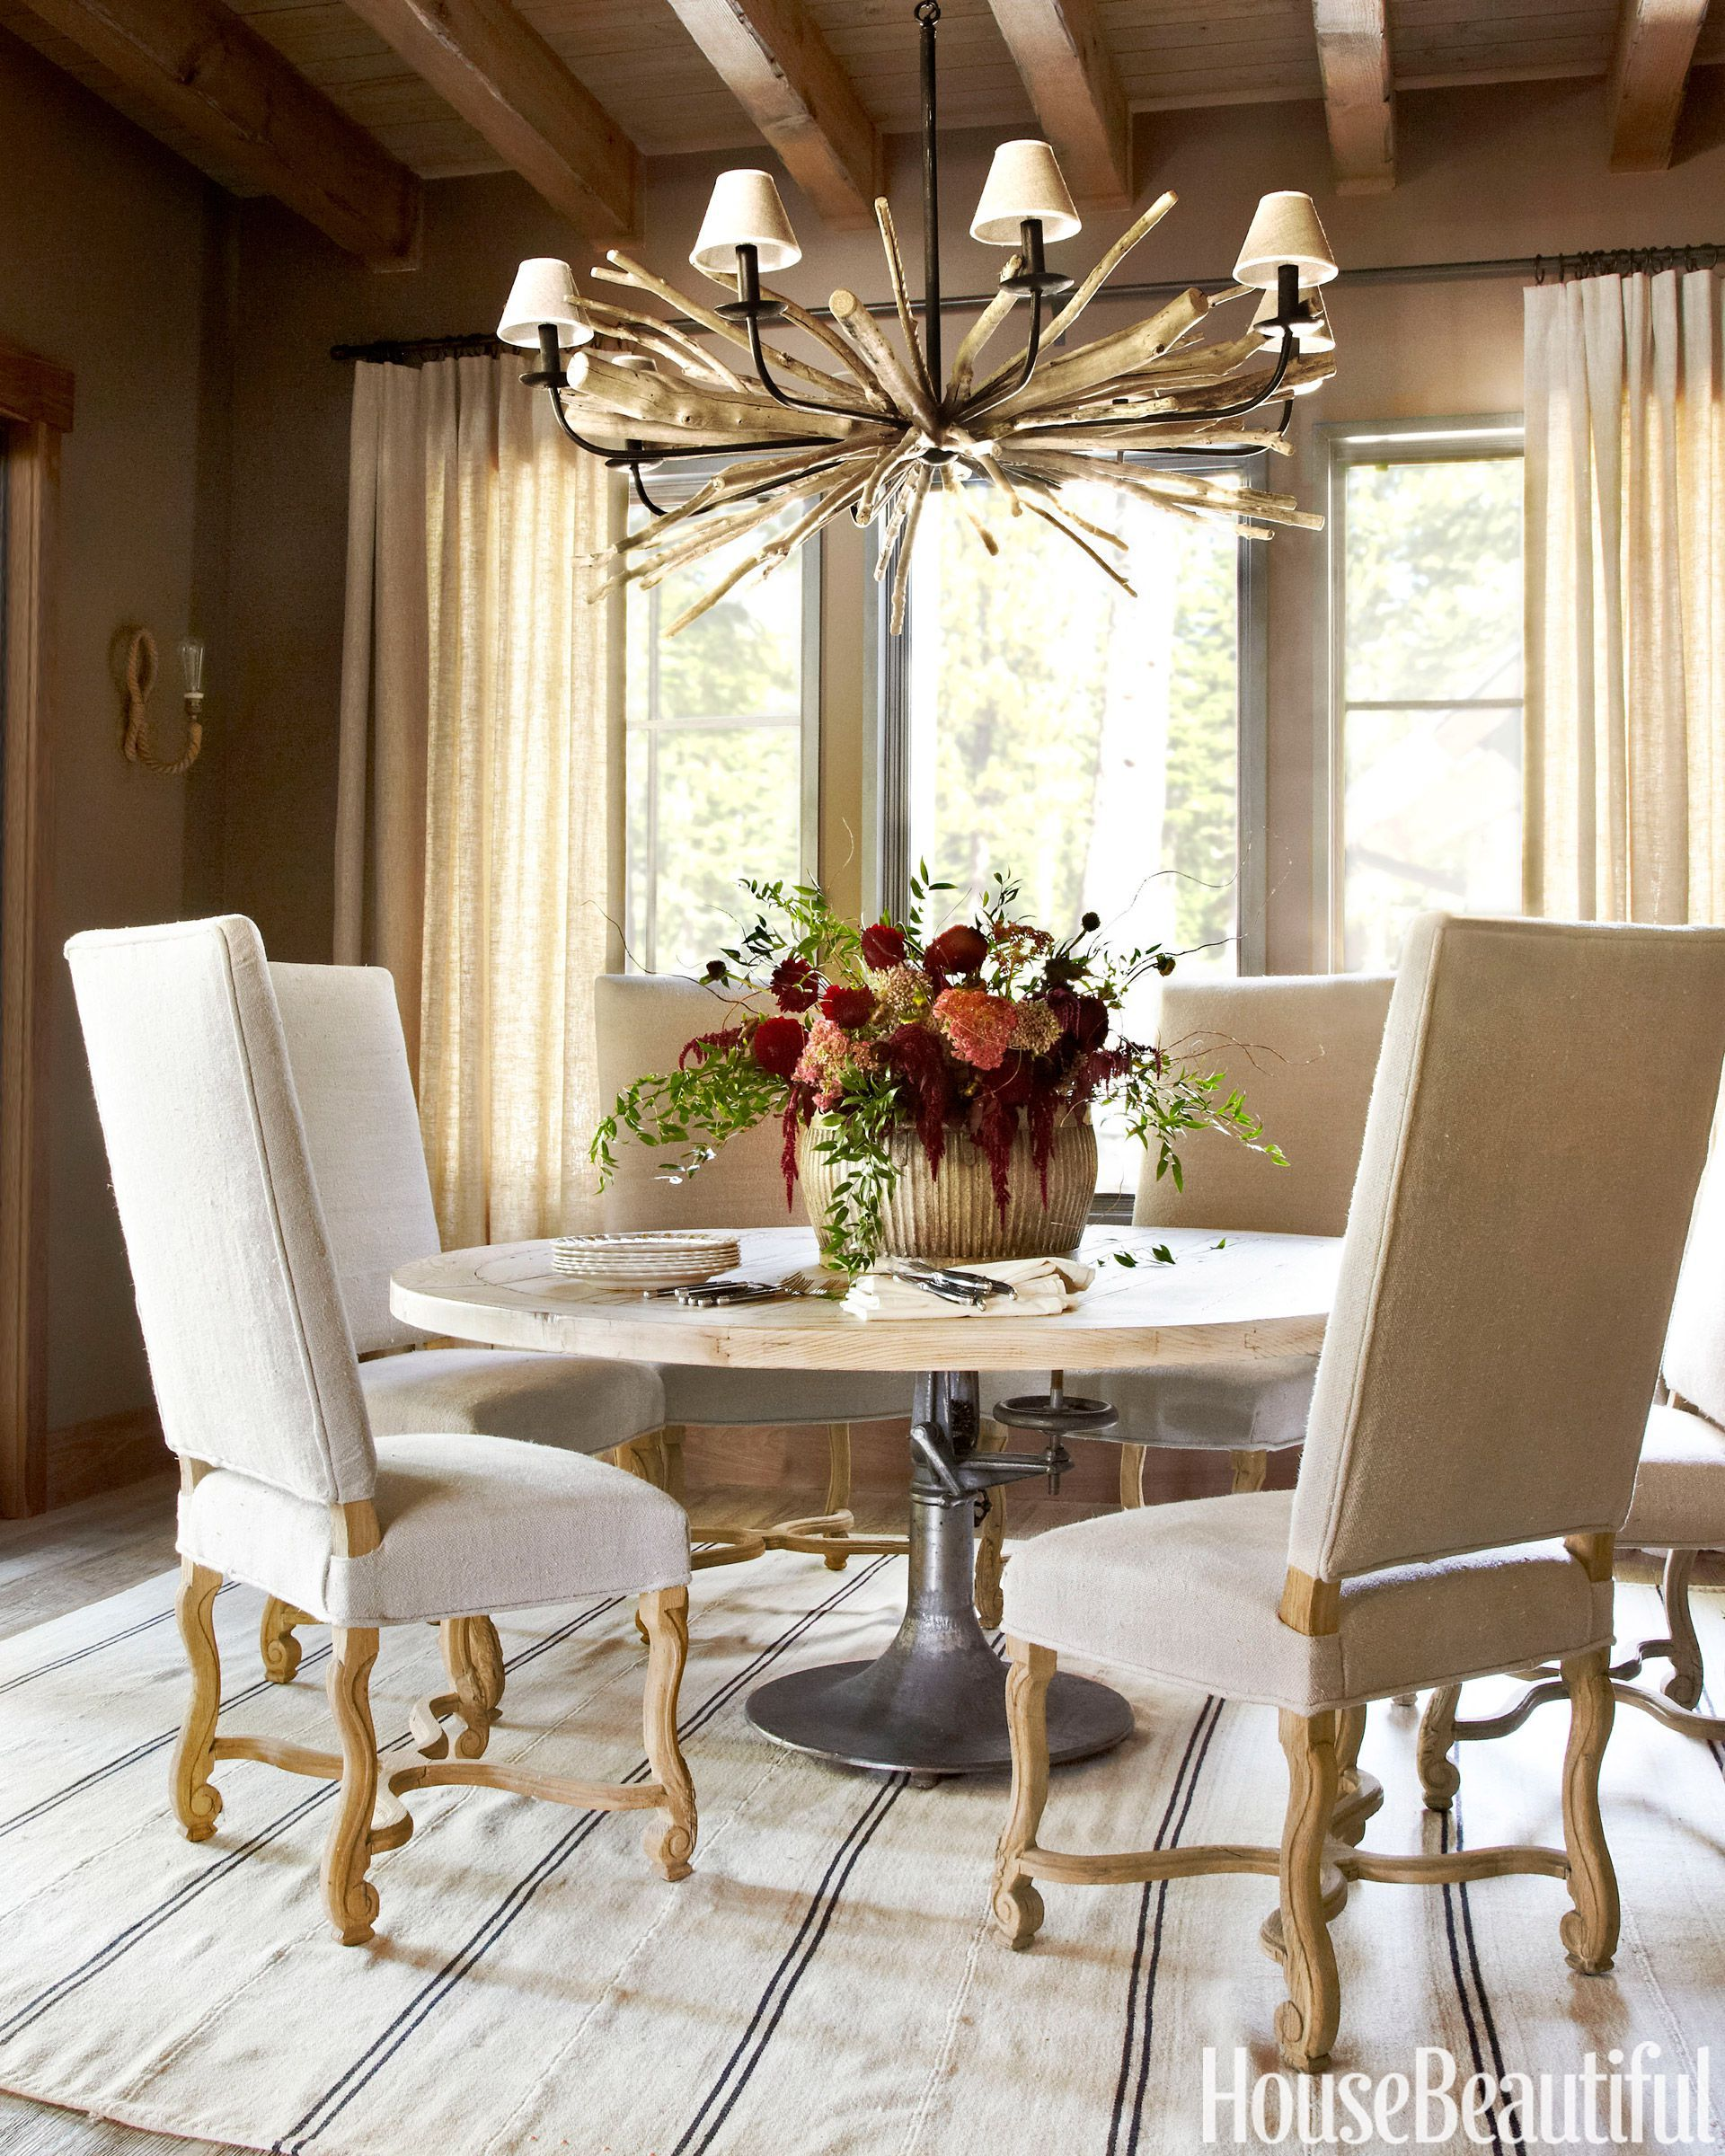 Ordinaire Rustic Dining Room